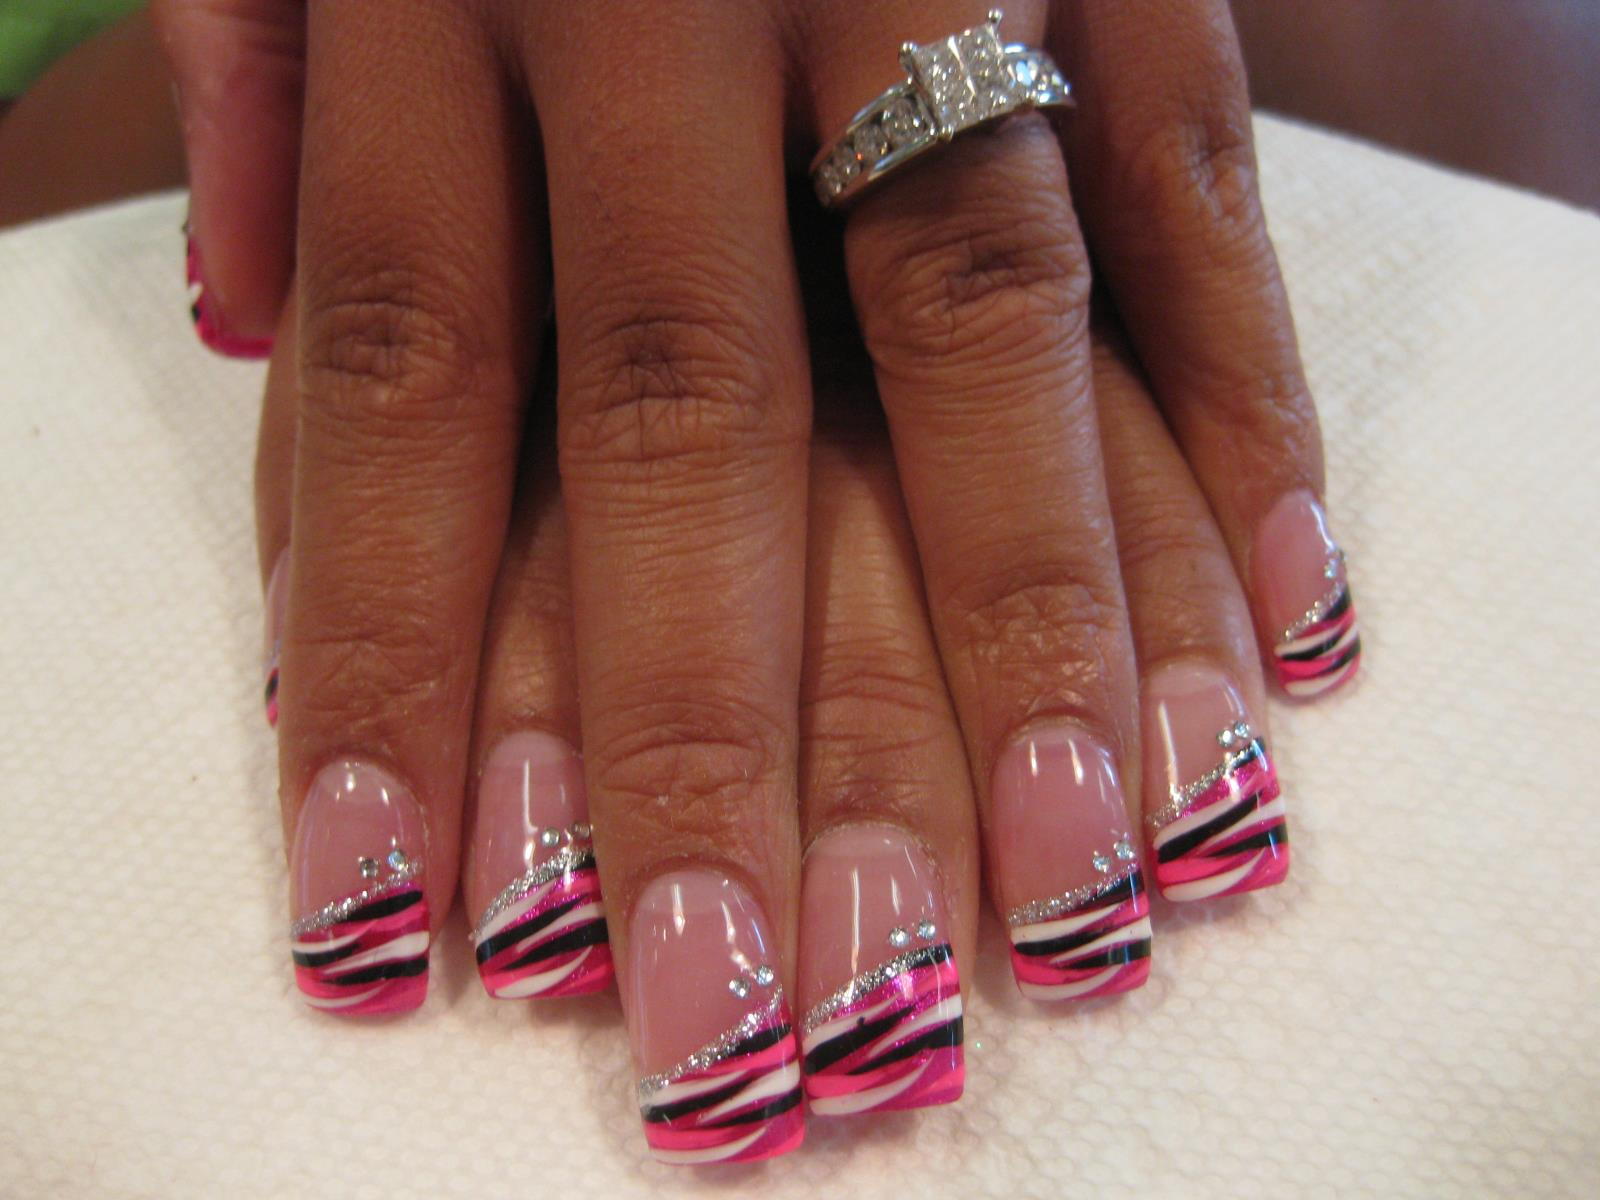 059g angled bright pinkpinkwhiteblack striped swirls topped with angled sparkling band prinsesfo Choice Image